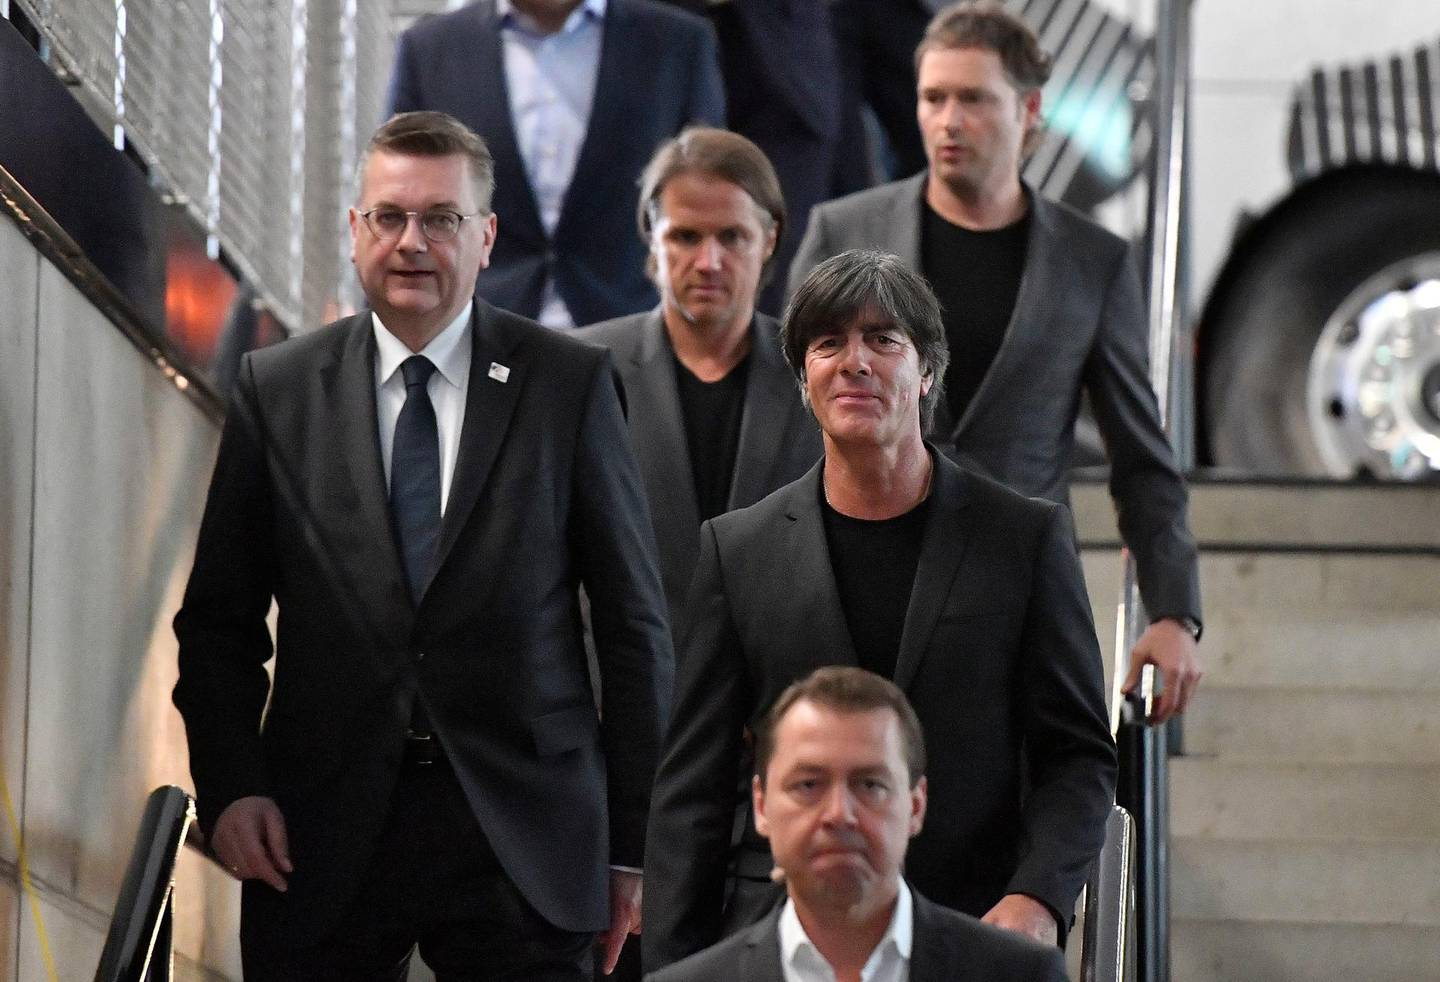 FILE - In this May 15, 2018 file photo DFB (German Football Association) President Reinhard Grindel, left, and head coach Joachim Loew, right, arrive at the German Football Museum in Dortmund, Germany, for the presentation of Germany's team for the Soccer World Cup in Russia. (AP Photo/Martin Meissner, file)